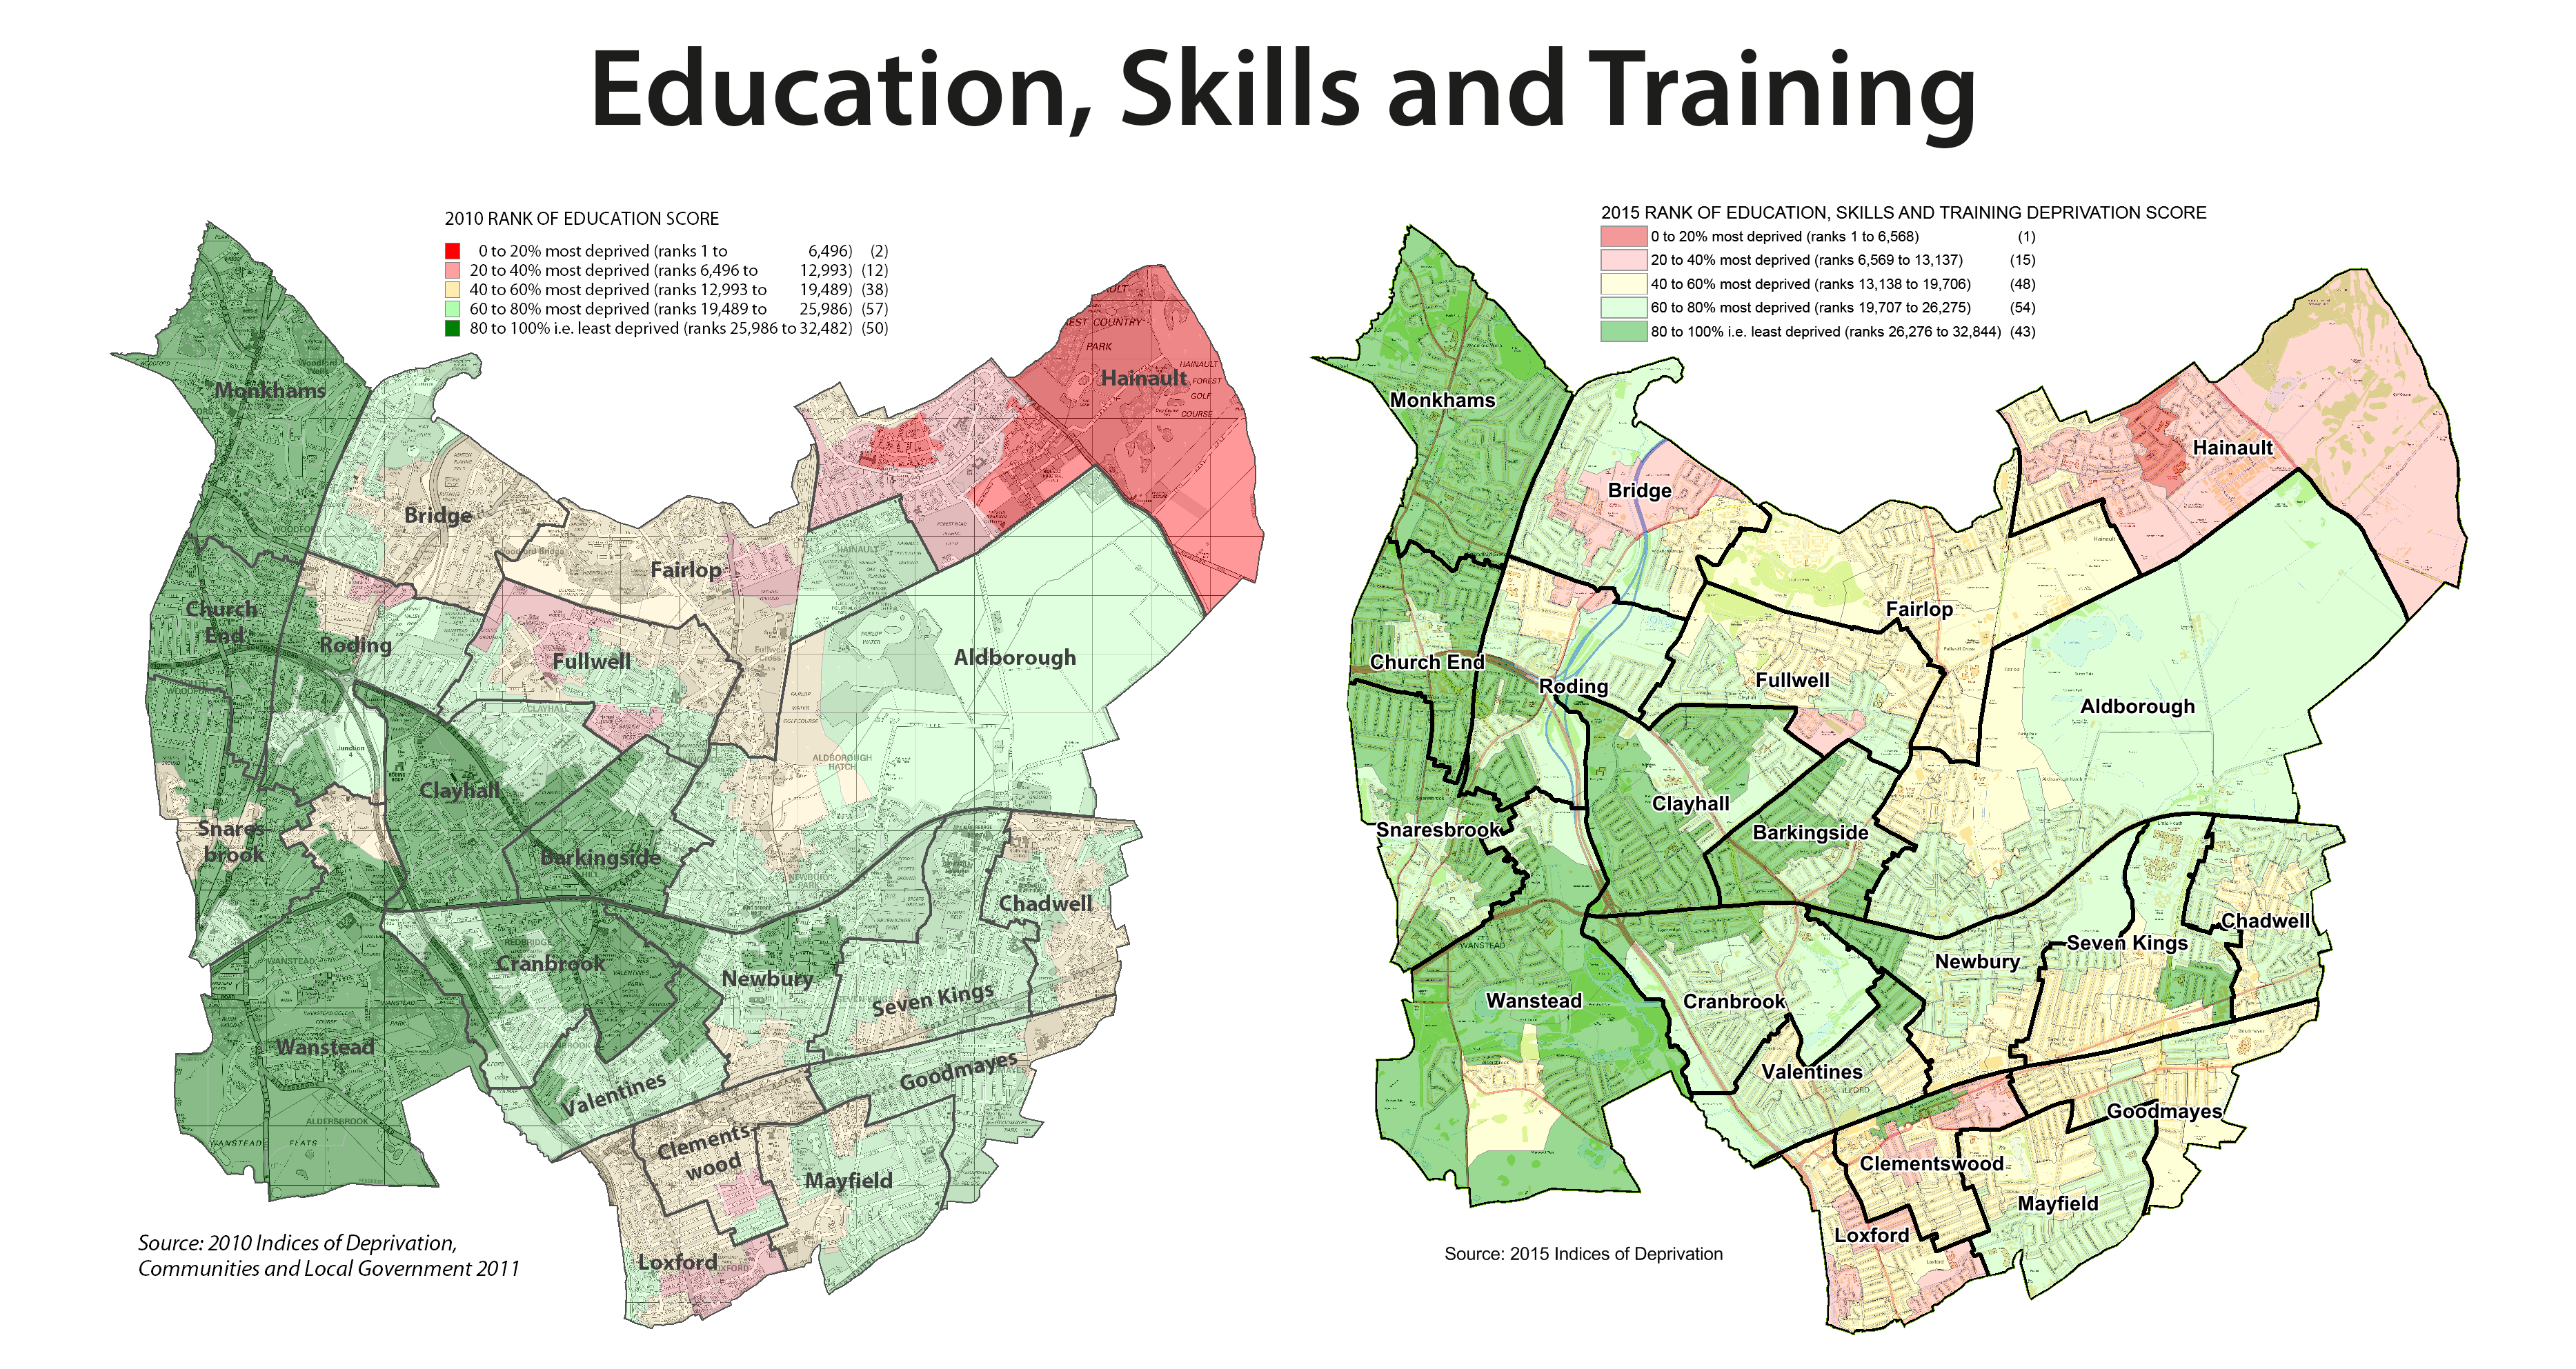 education, skills and training deprivation map